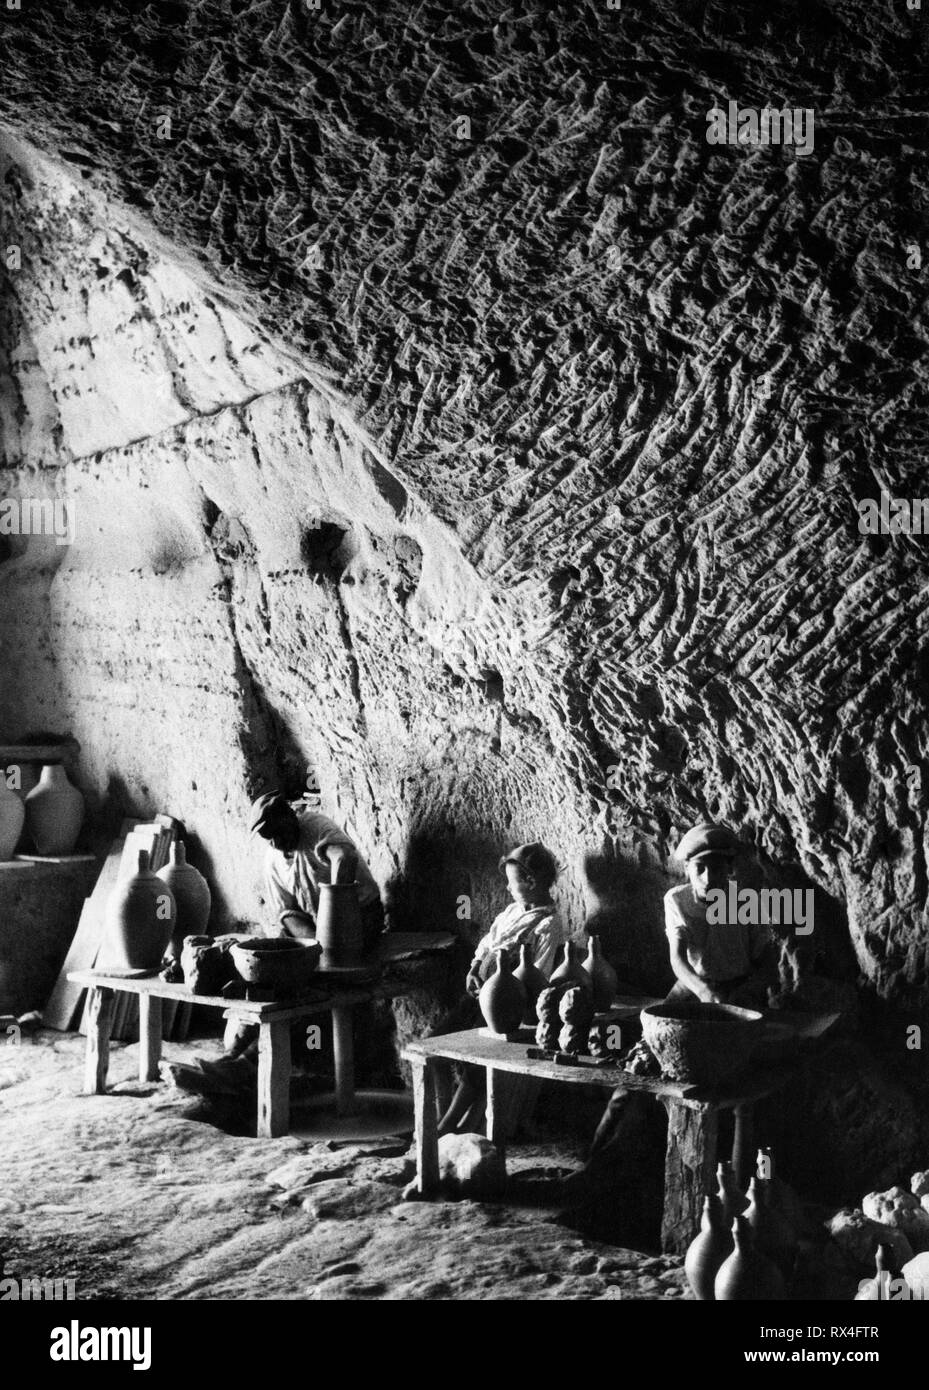 Europe, Italy, Calabria, gerace, artisans of terracotta, 1940 - Stock Image